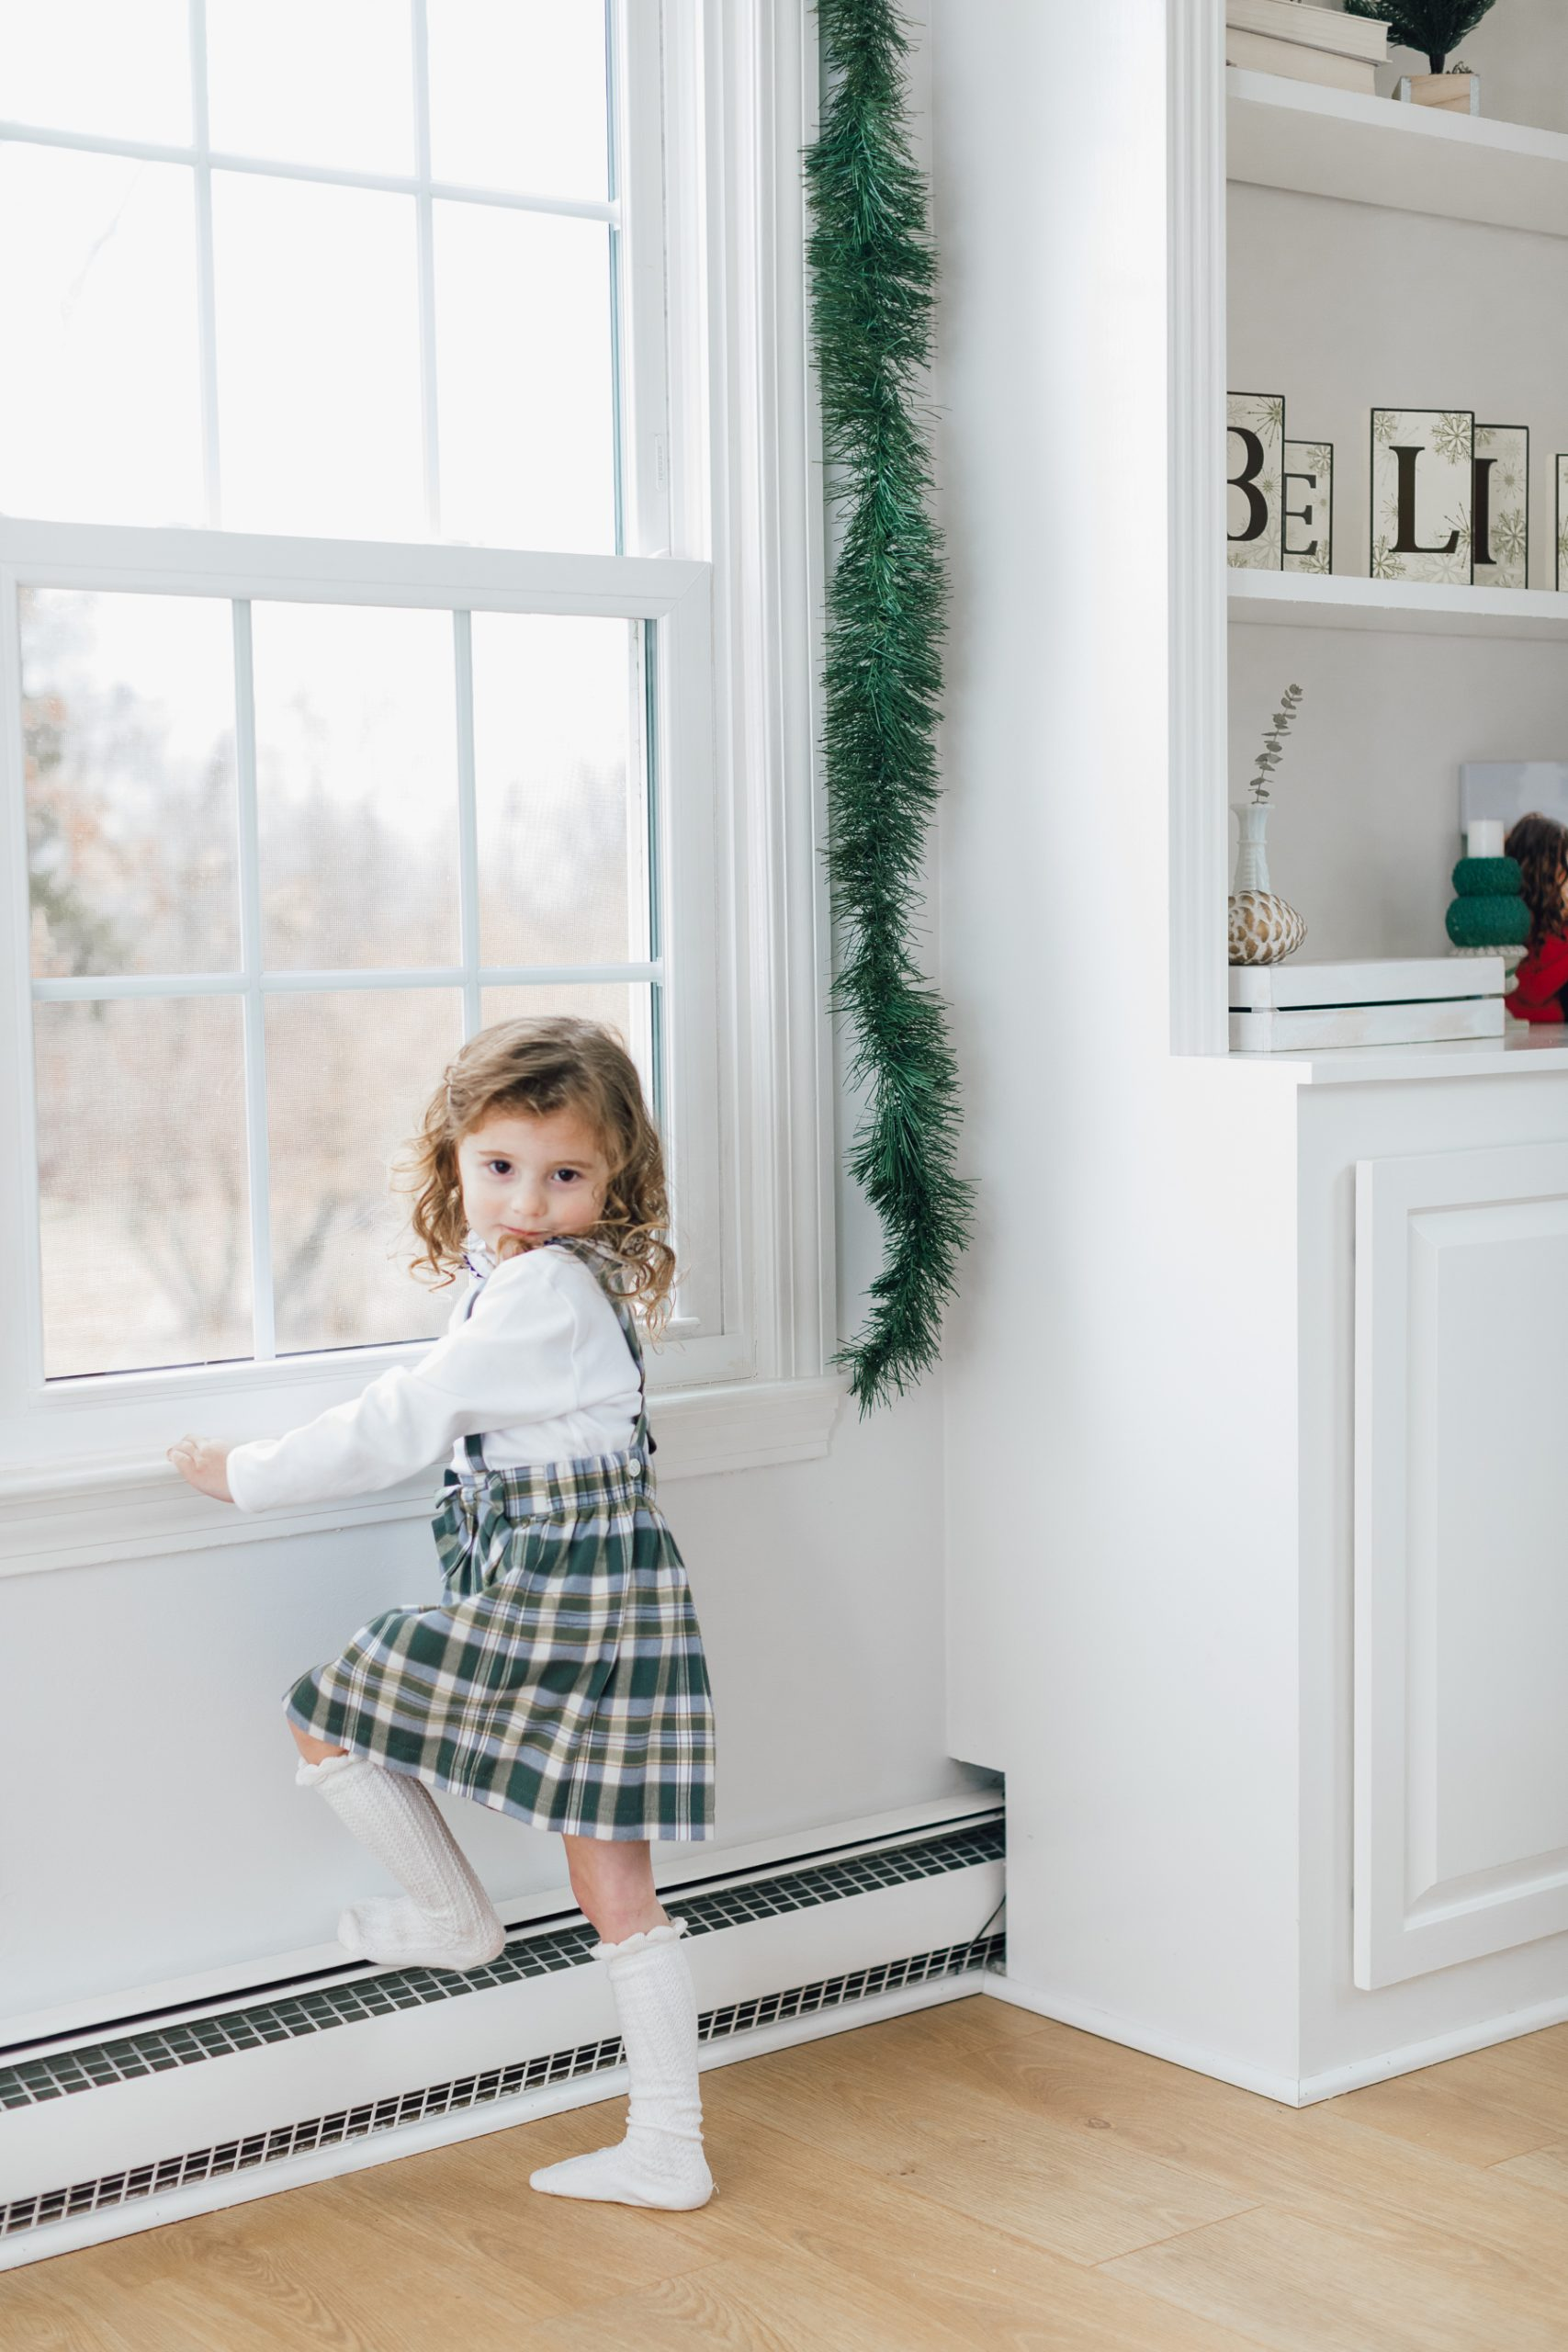 little girl making a sassy face while standing at a window